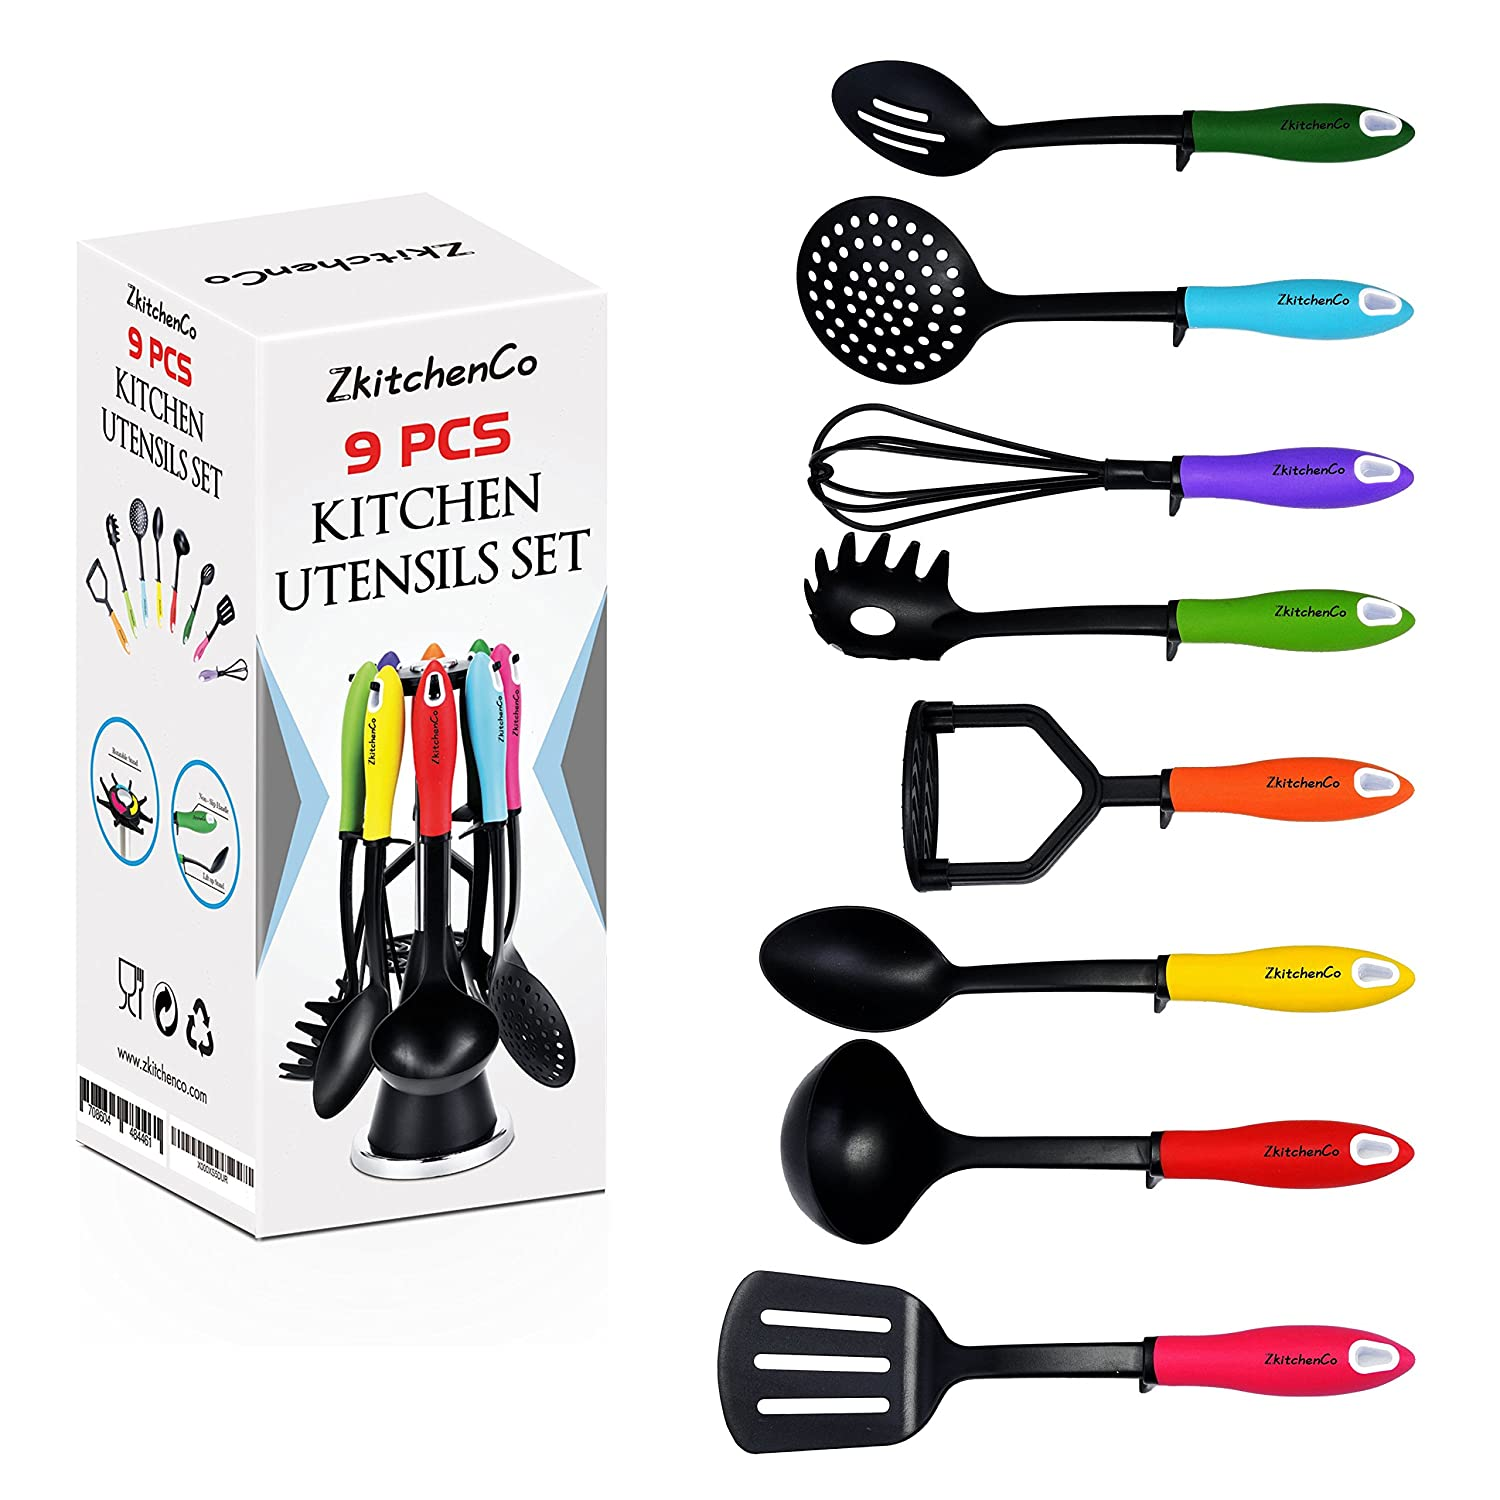 dining silicone utensil dp premium non koe utensils heat set amazon stick resistant kitchen com piece